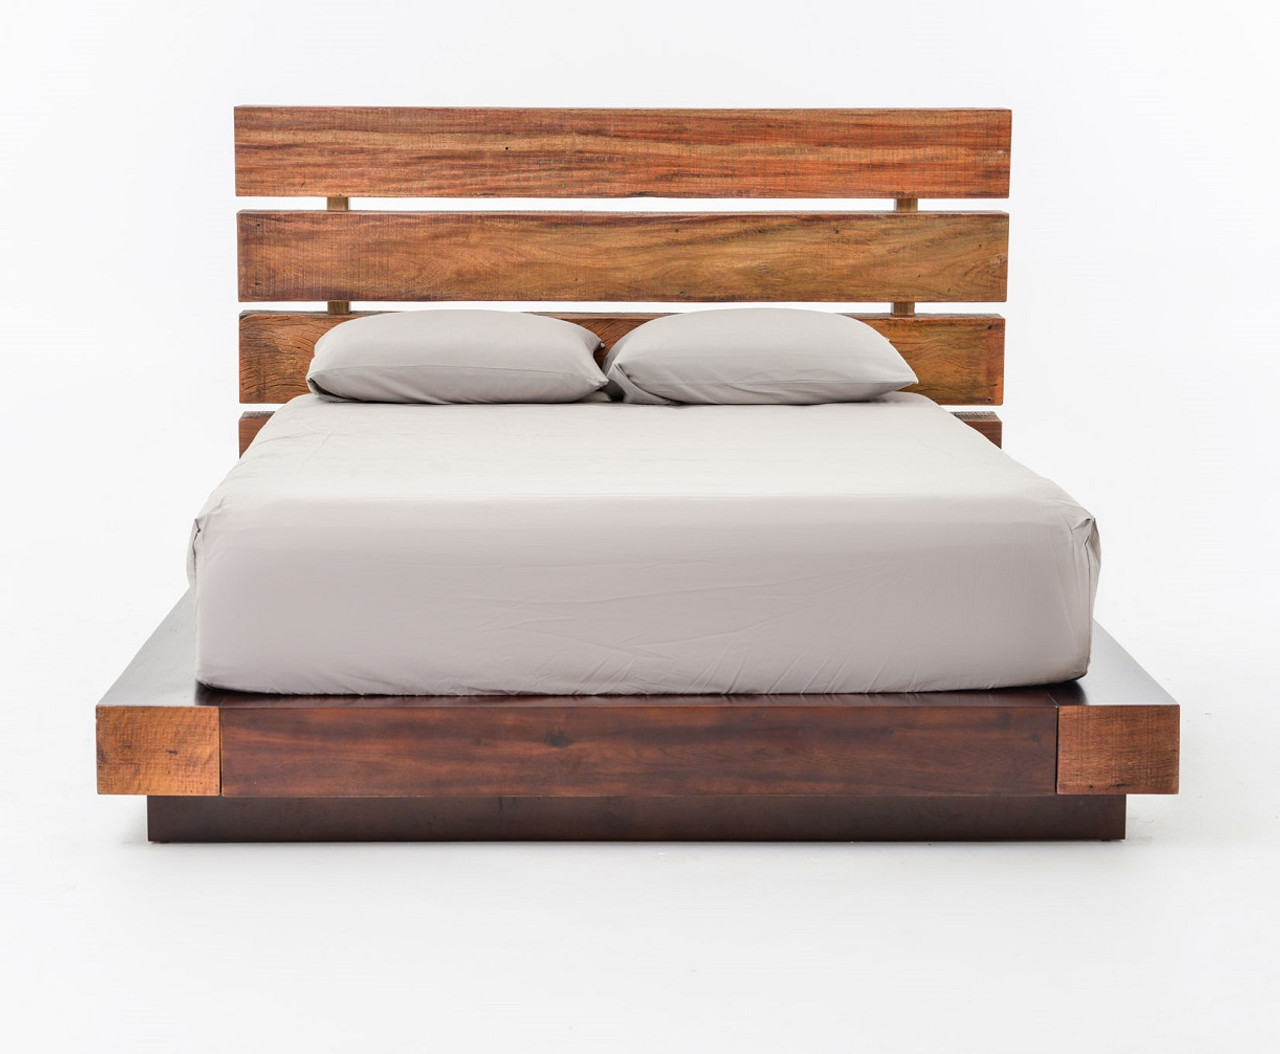 Bina Iggy King Platform Bed Reclaimed Wood Platform Bed Frame